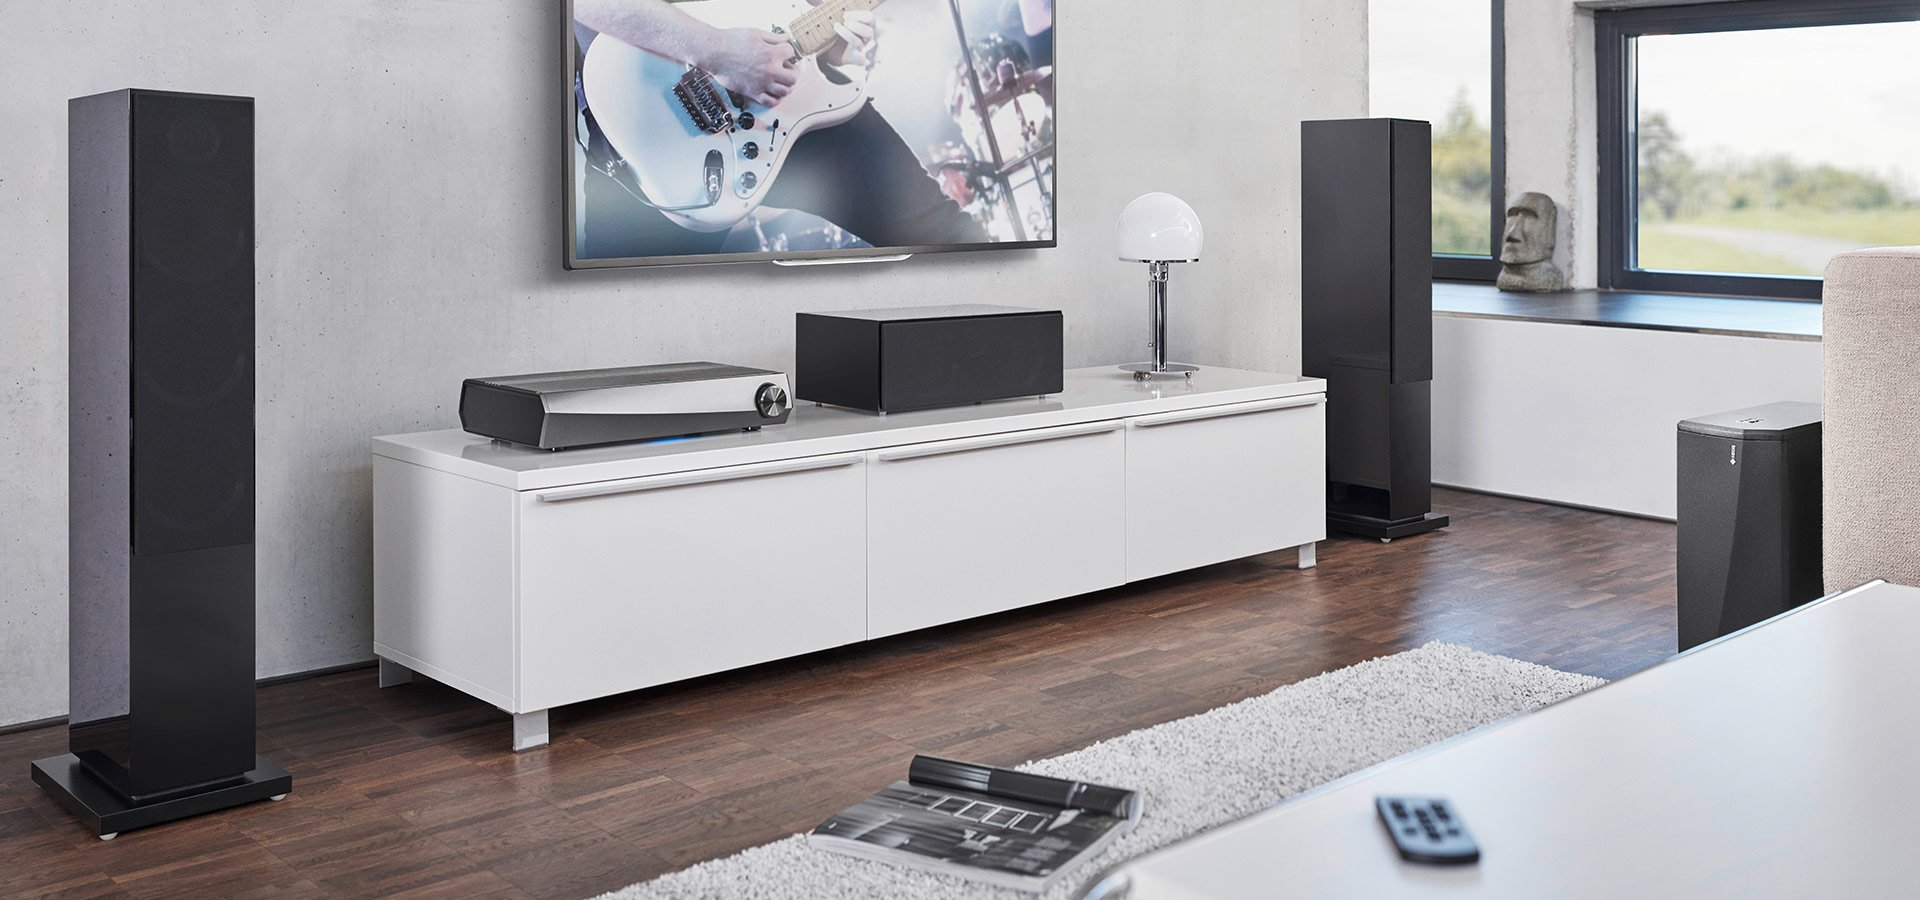 3.1 home cinema-opstelling